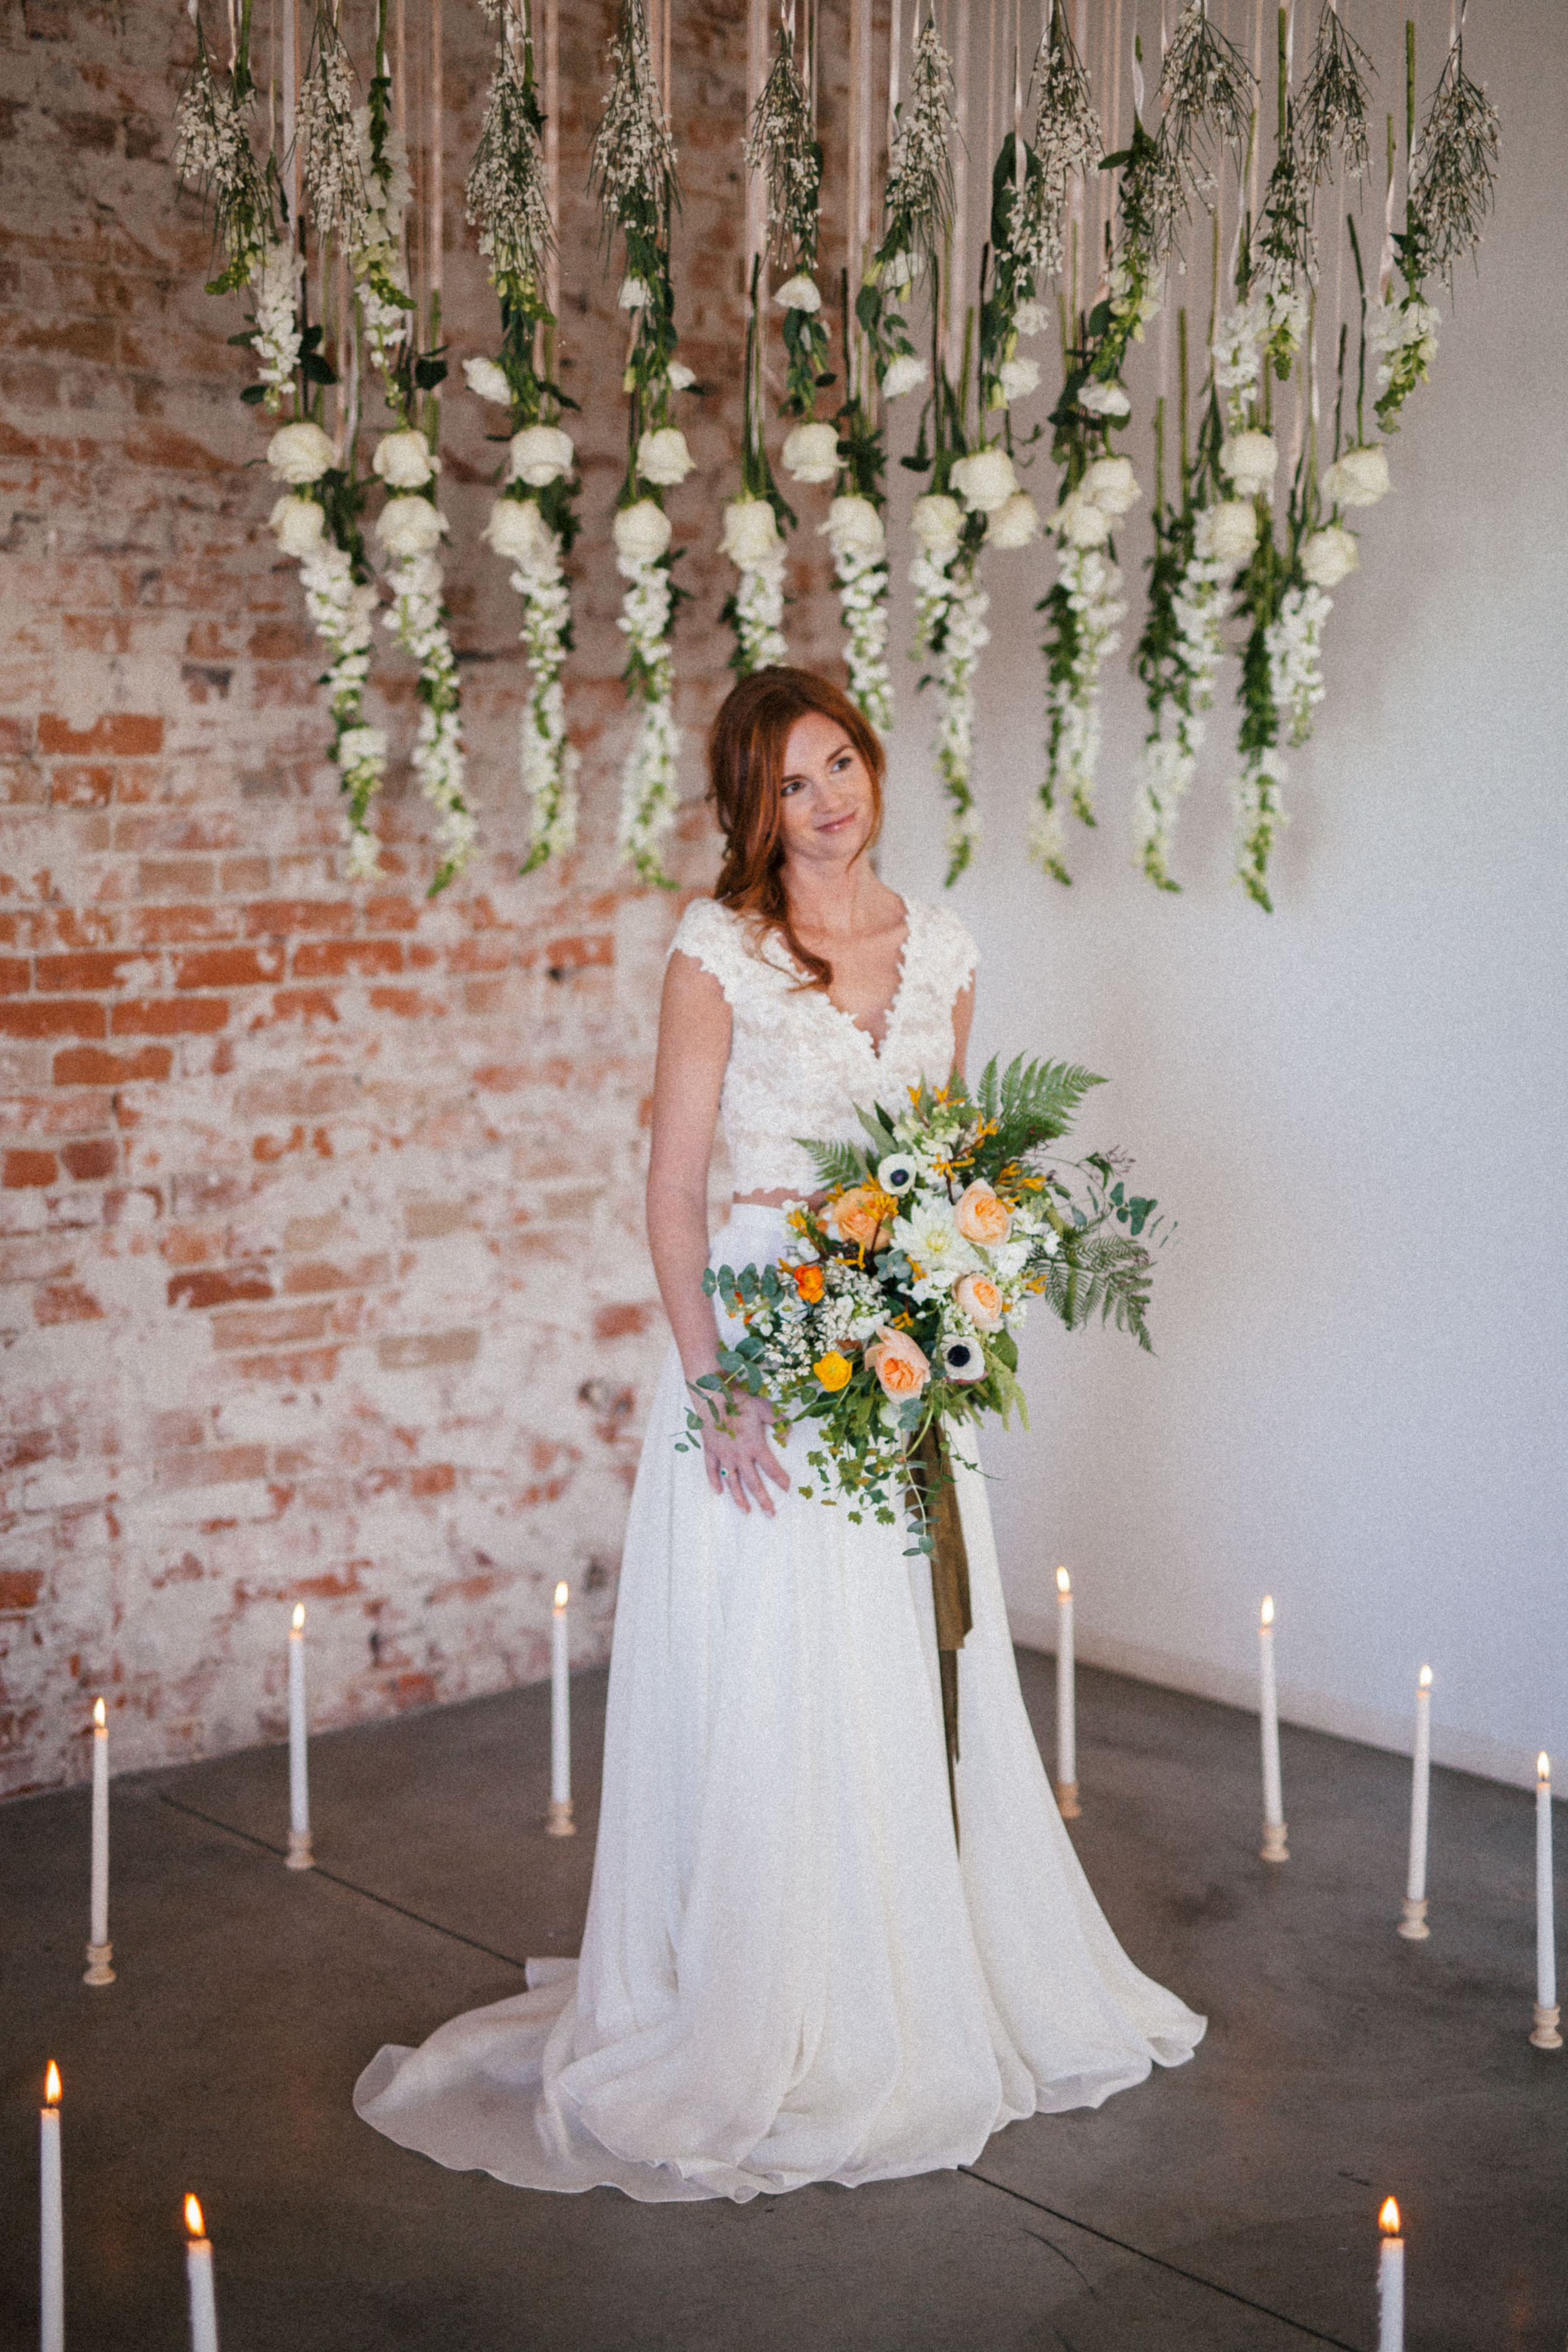 Flowers by Lace and Lilies, Bridal Bouquet, Spring wedding, Yellow, Green, Peach Bouquet, Flower Installation, Ceremony Backdrop